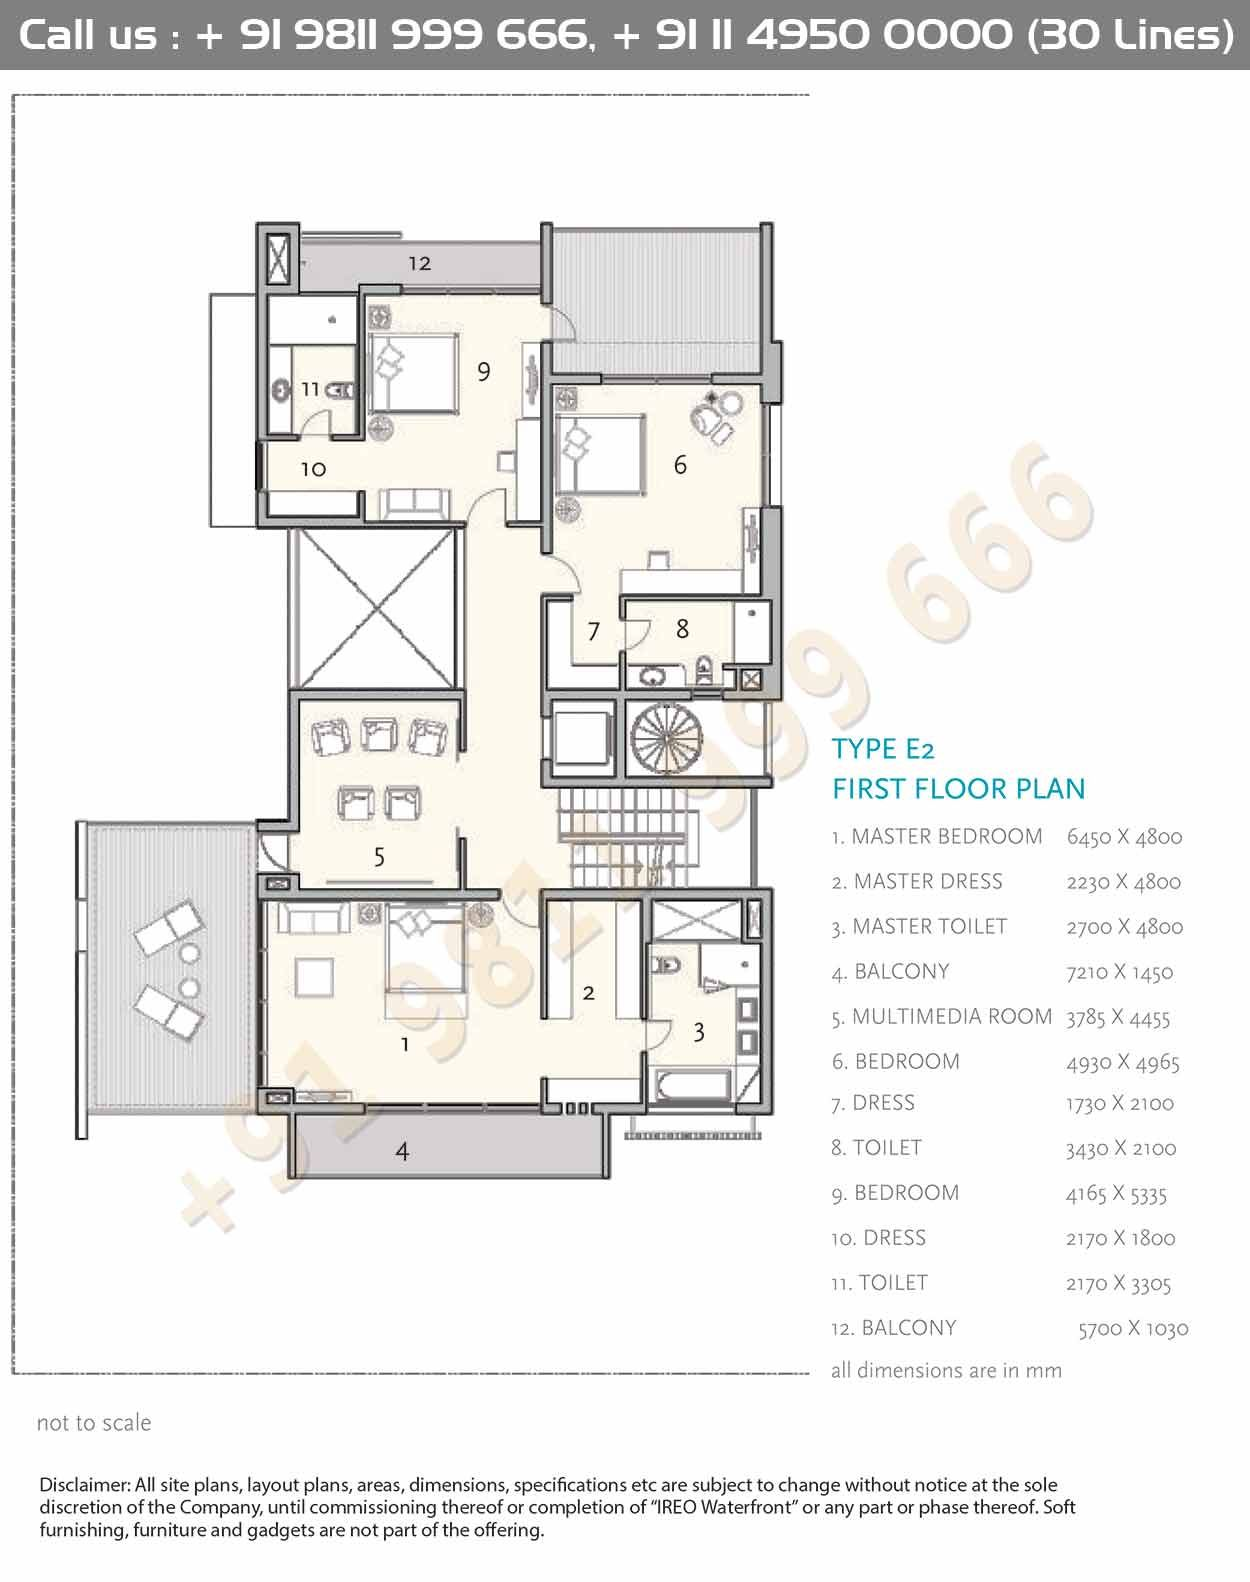 Type E2 First Floor Plan Architectural Floor Plans Apartment Floor Plans Modern House Plans